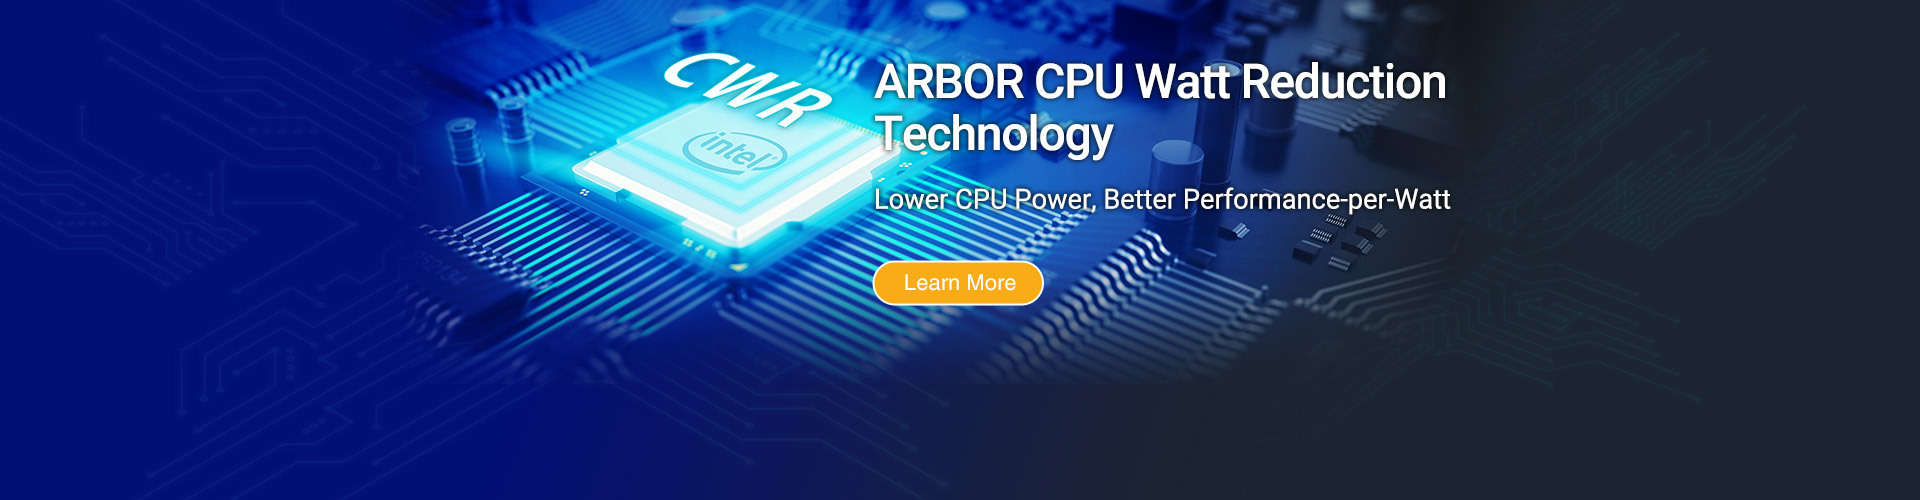 ARBOR CWR Technology – Lower CPU Power, Better Performance-per-Watt